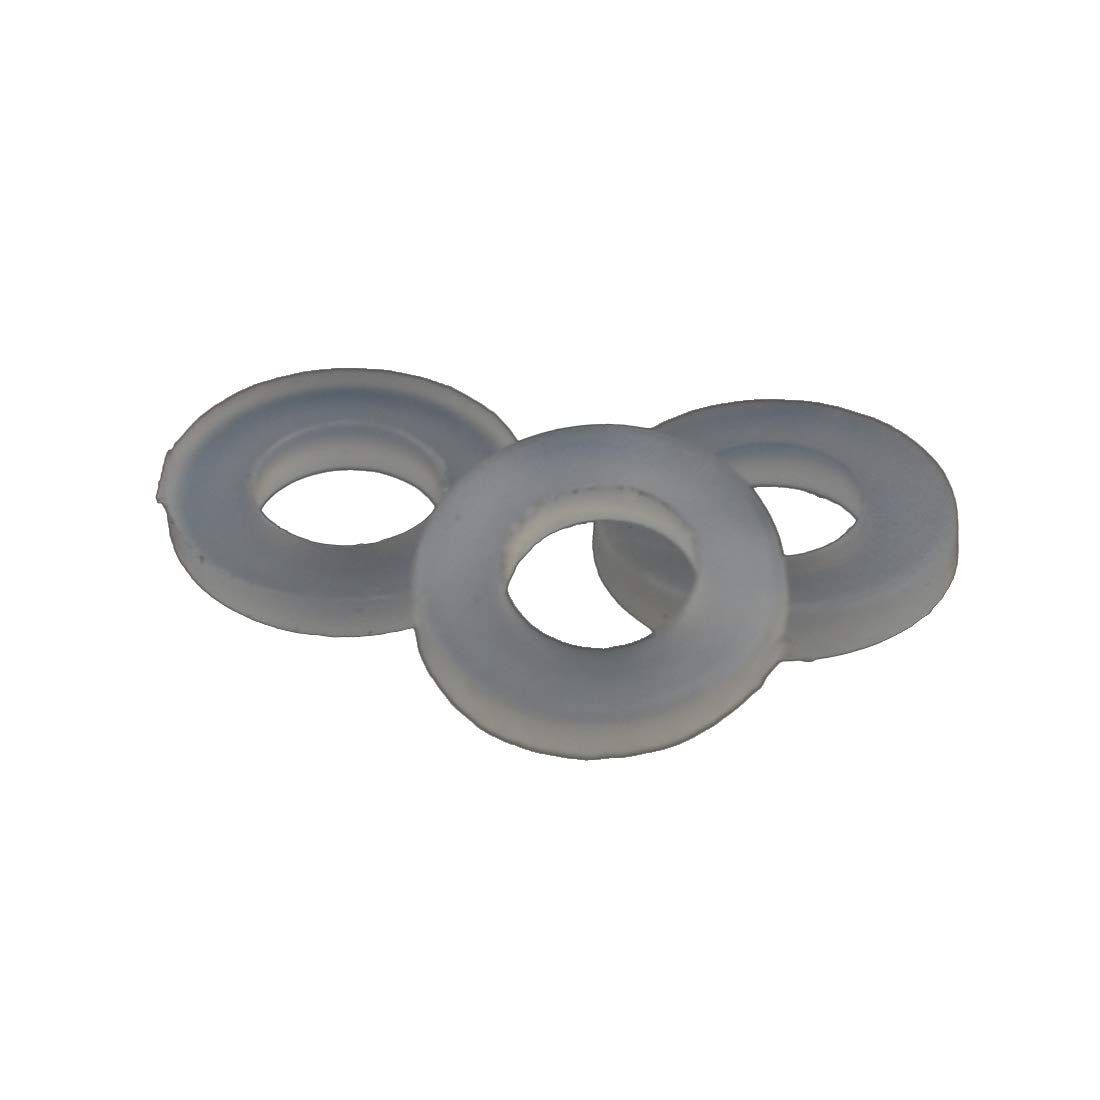 M3X7X1 ID 1//8 inches OD 17//64 inches 100PCS Nylon Flat Washer Plain Washer Grommets Plastic Sheet Gasket Fastener